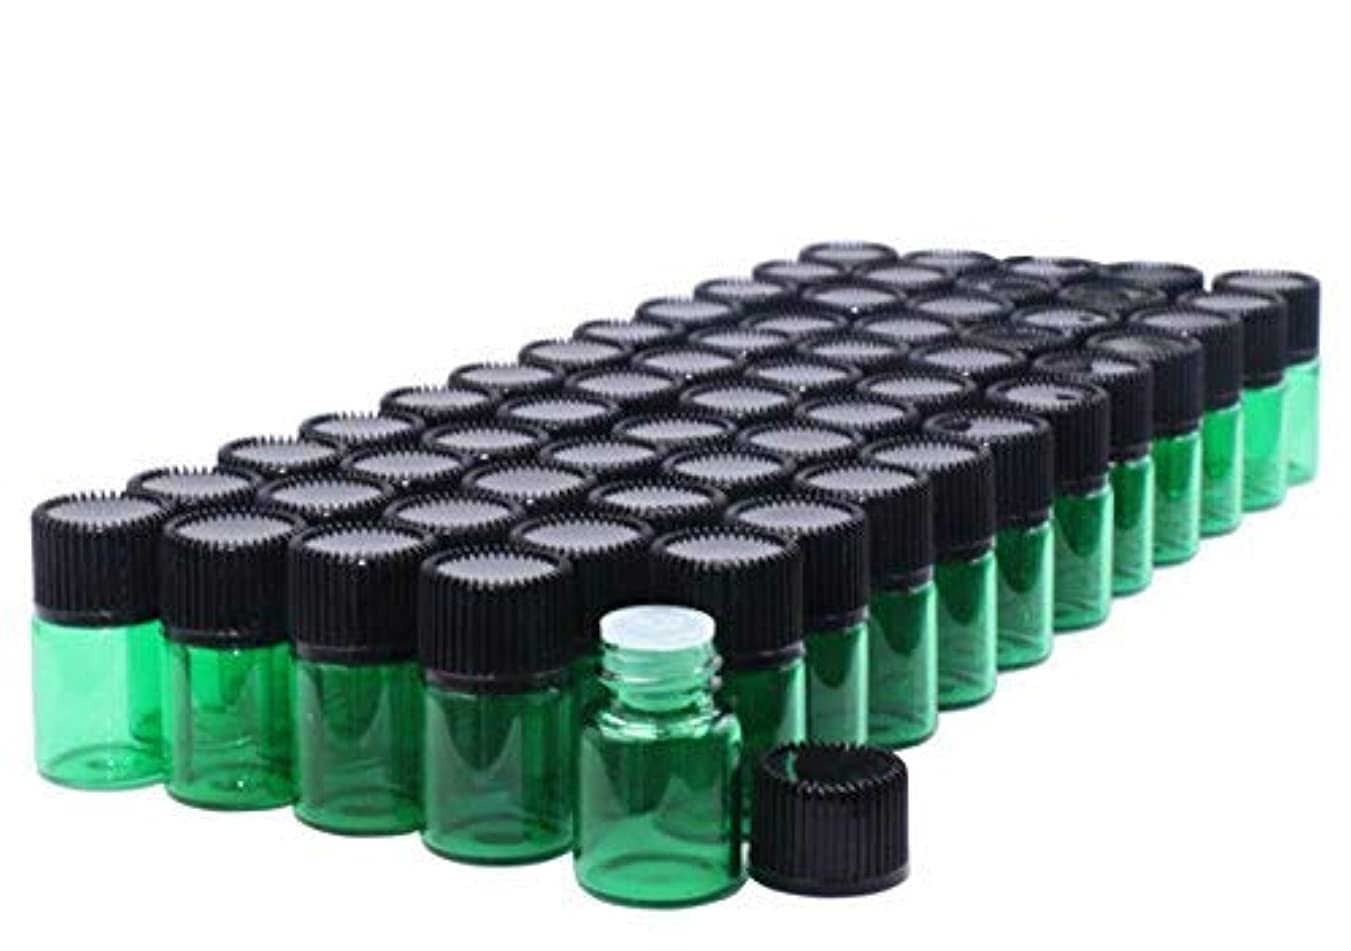 受け入れたトイレグリーンランドPack of 60,2 ml (5/8 Dram) Green Glass Sample Vials Empty Small glass essential oil sampling Test Bottles with...